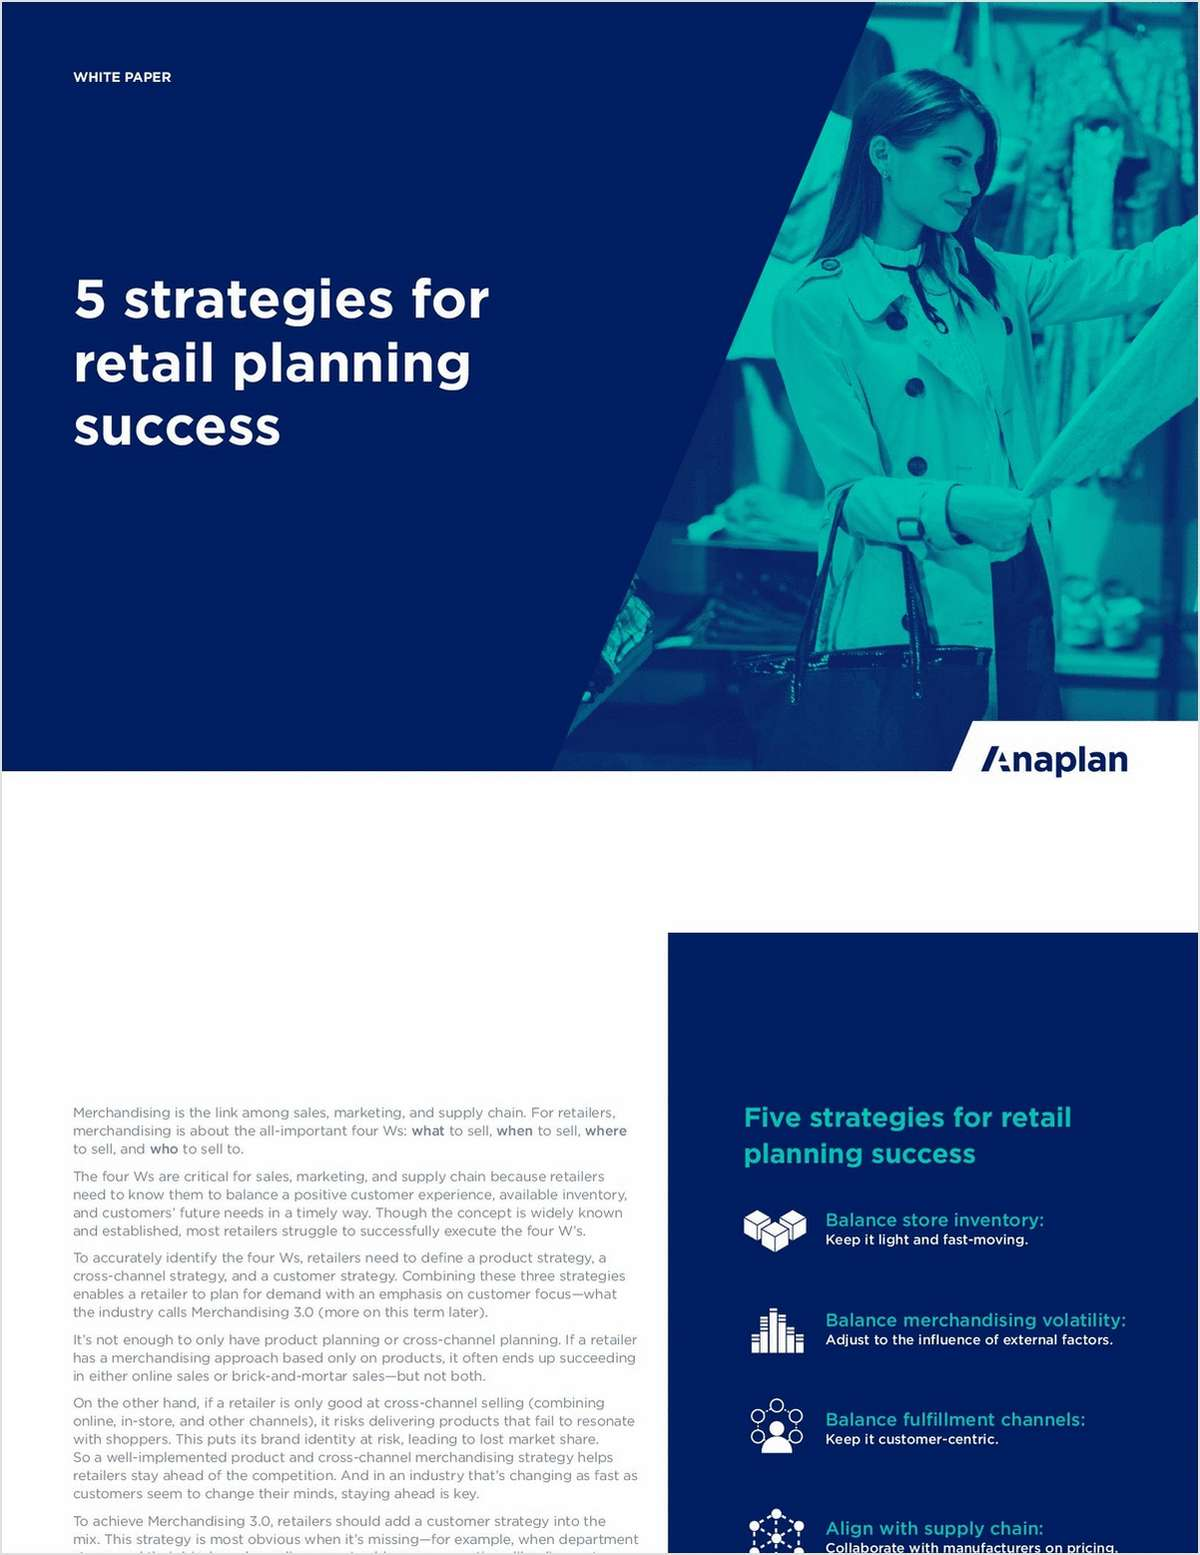 5 Strategies for Retail Planning Success